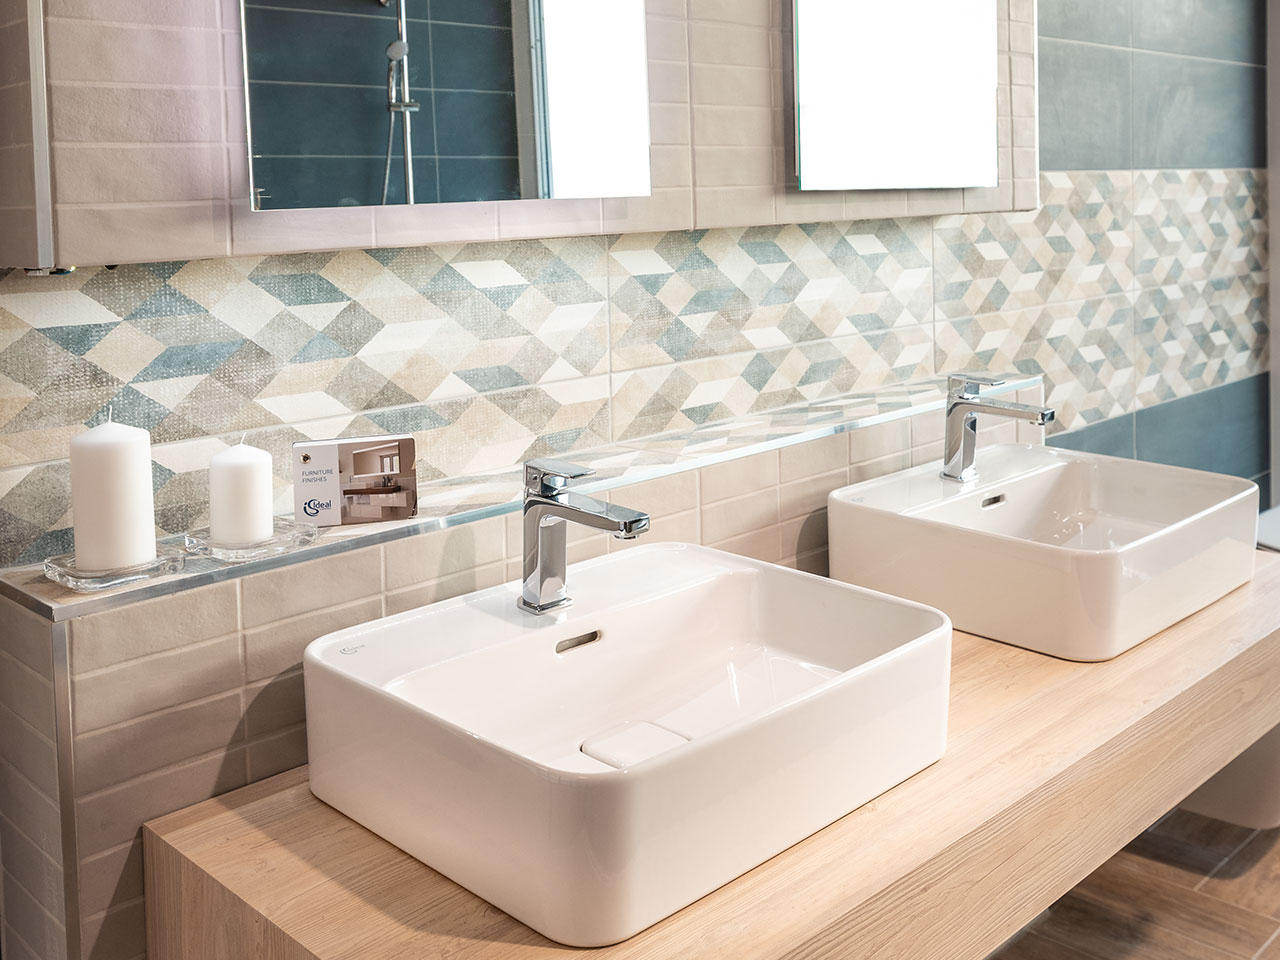 DIPLON BATHROOMS Bathrooms, bathrooms equipment, ceramics Beograd